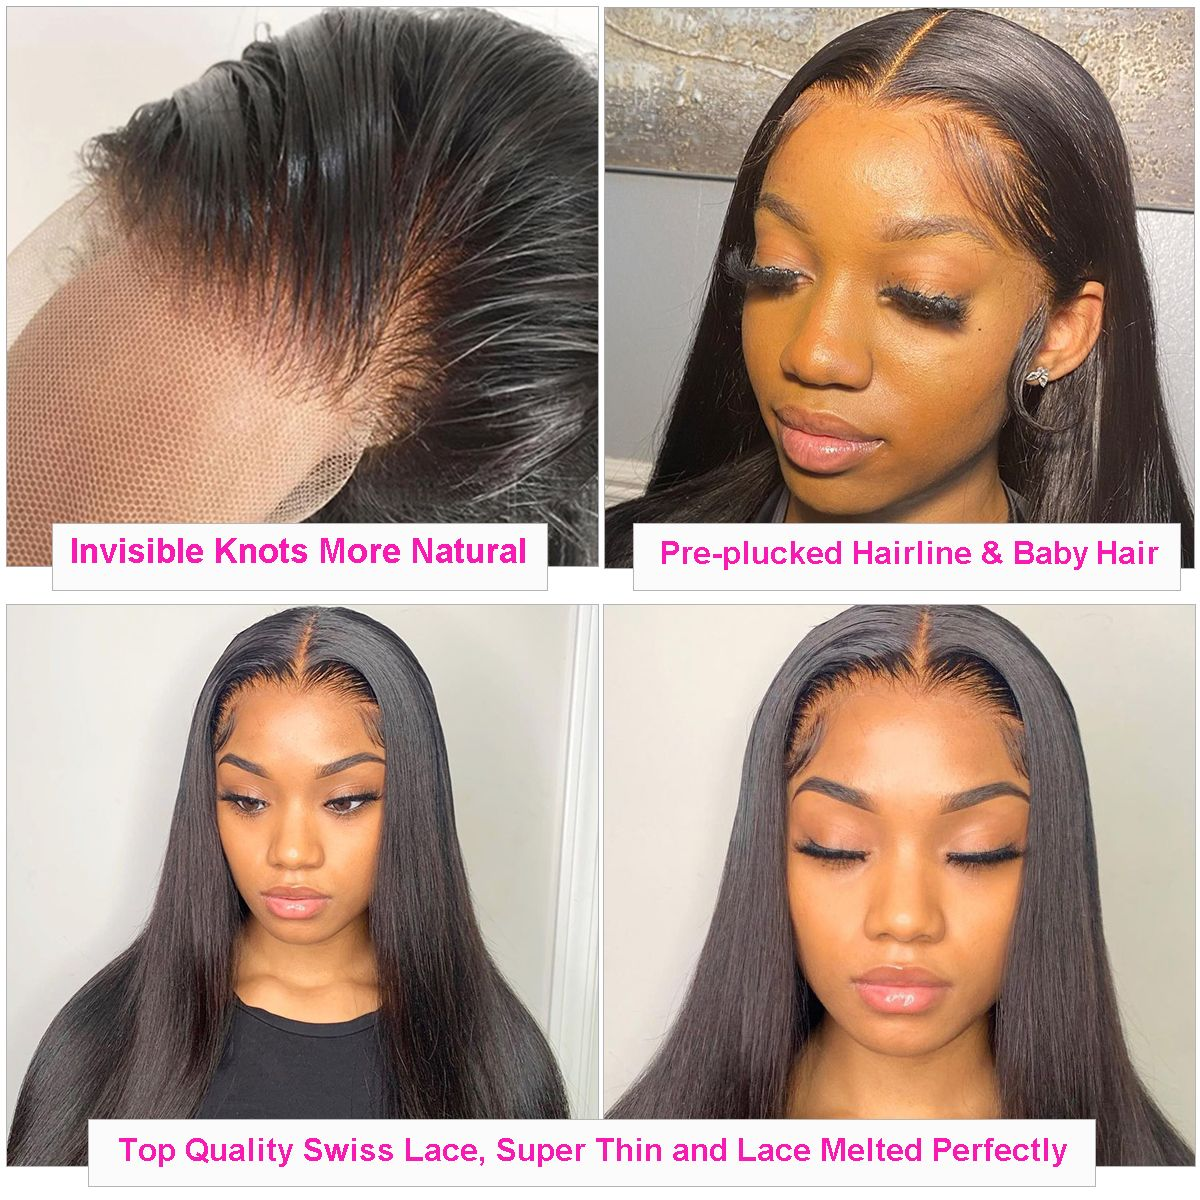 Straight 13x4 lace wig detail